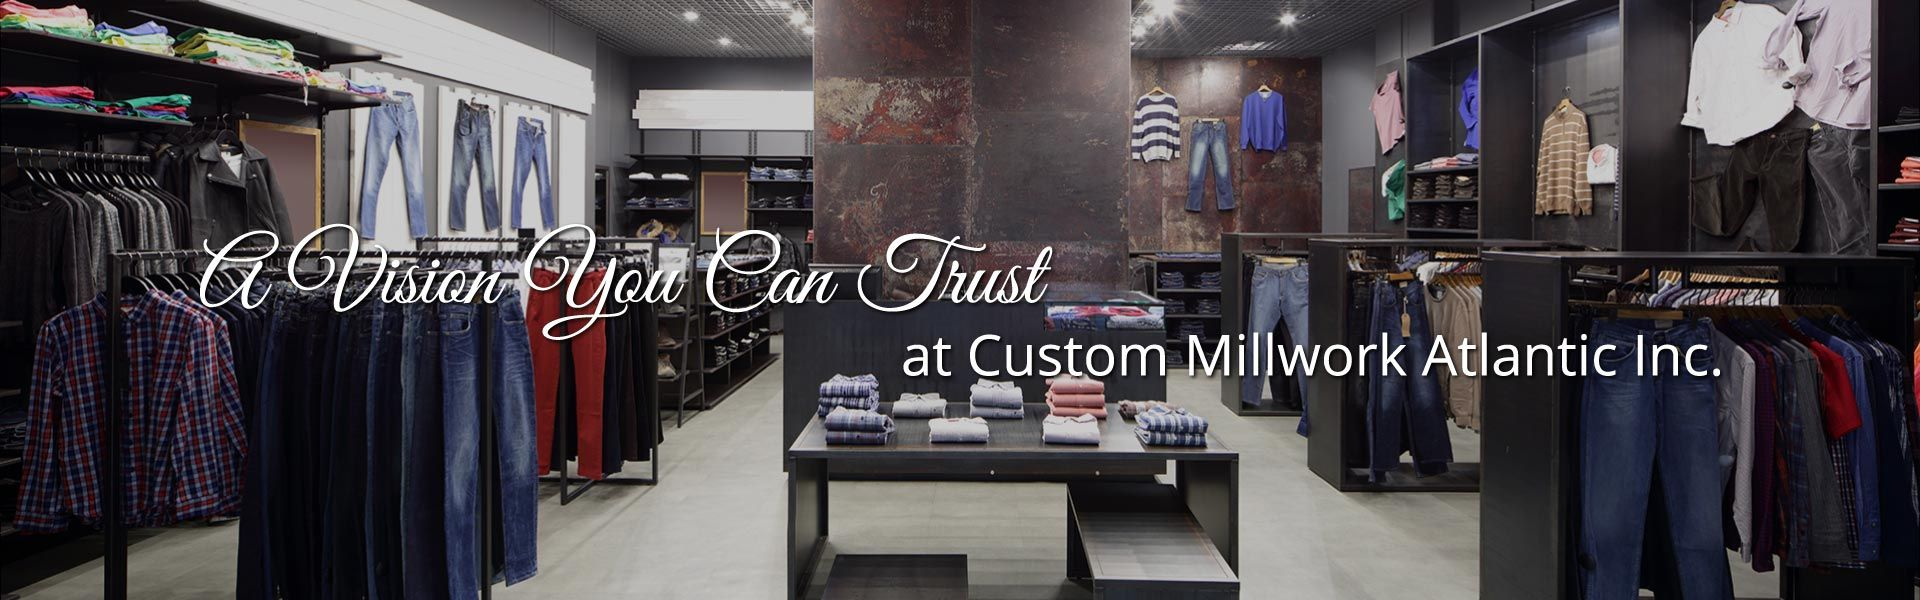 A Vision You Can Trust at Custom Millwork Atlantic Inc. | Retail store